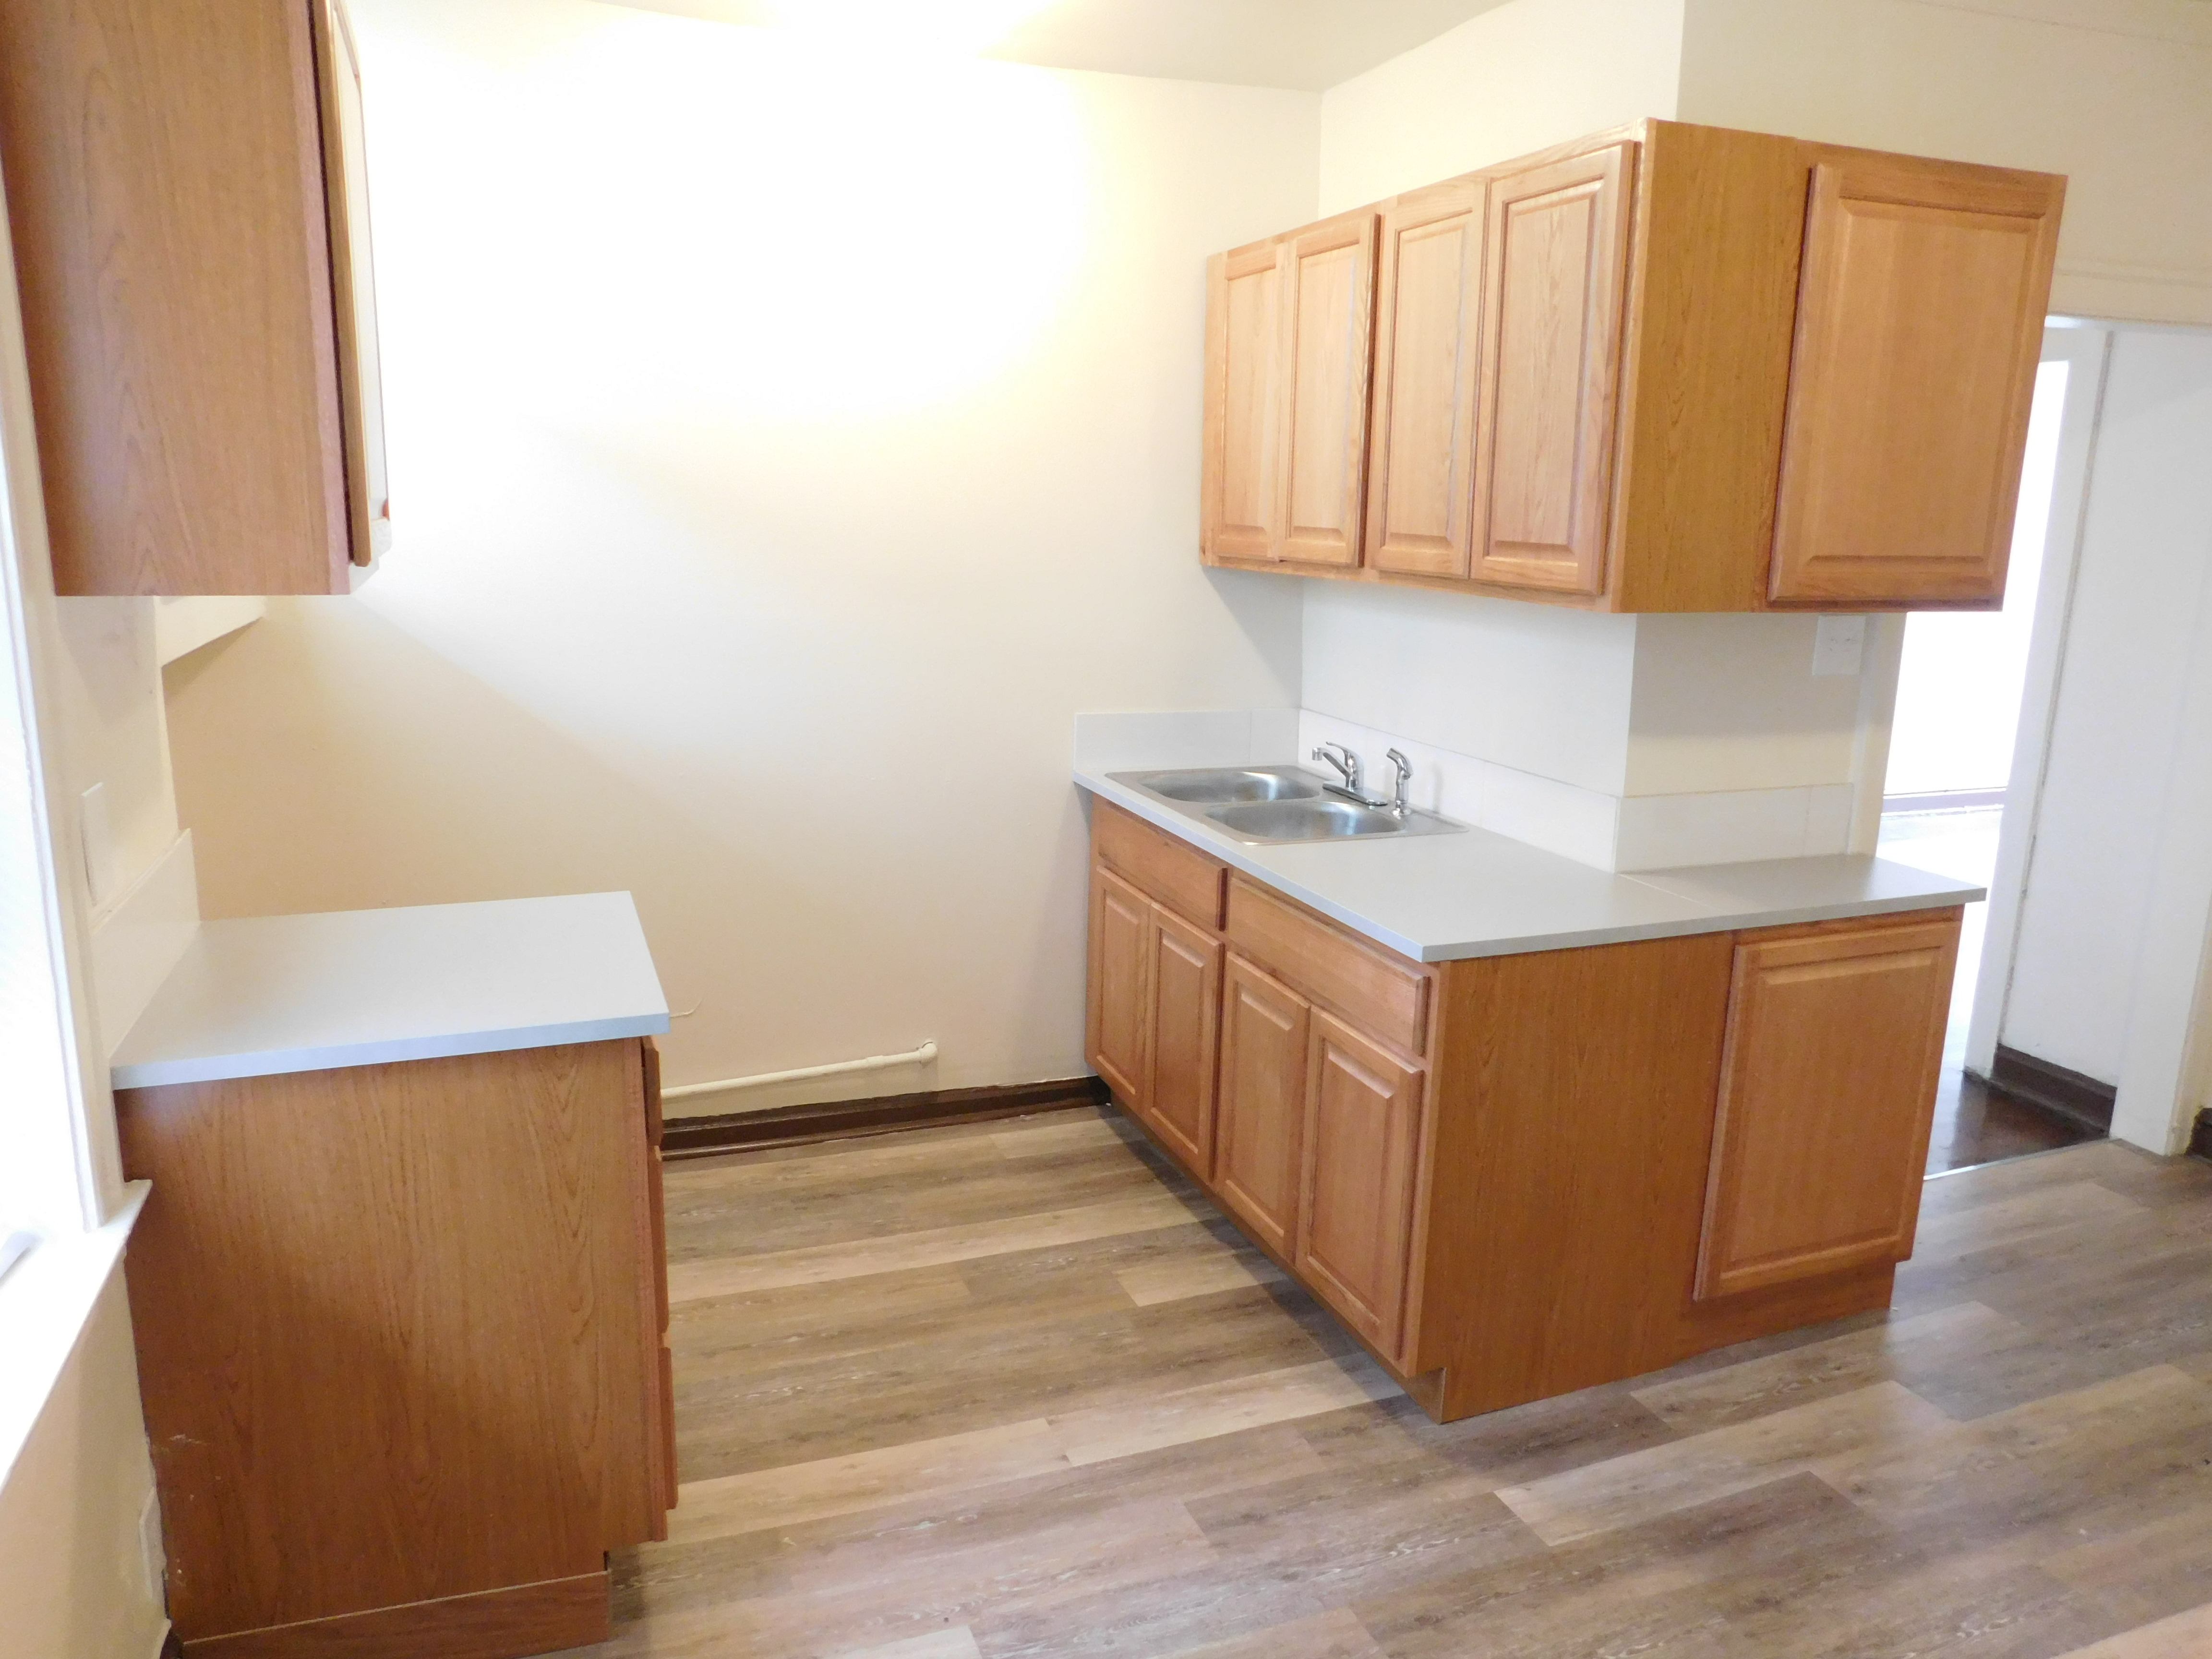 Apartment for rent at 1057 N Austin, Chicago, IL. 60651, Kitchen